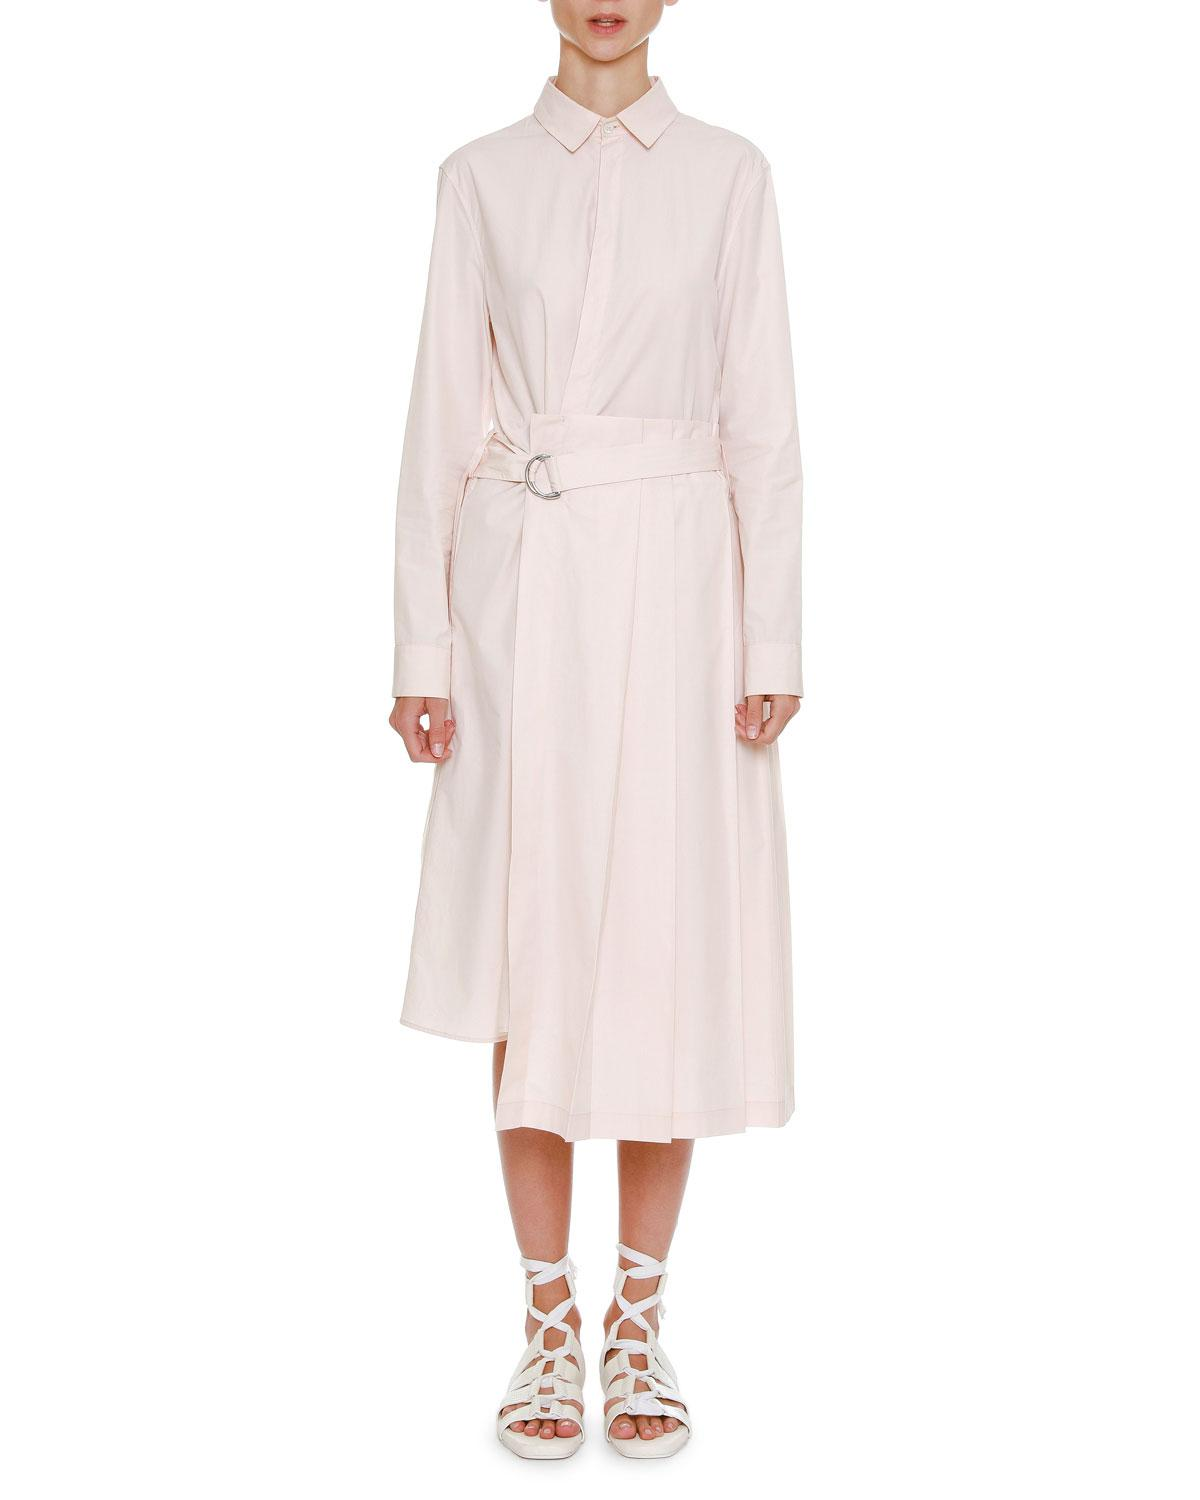 Sale Very Cheap Layered Panel Shirt Dress Jil Sander Cheap Sale Visit OZdqGpKn